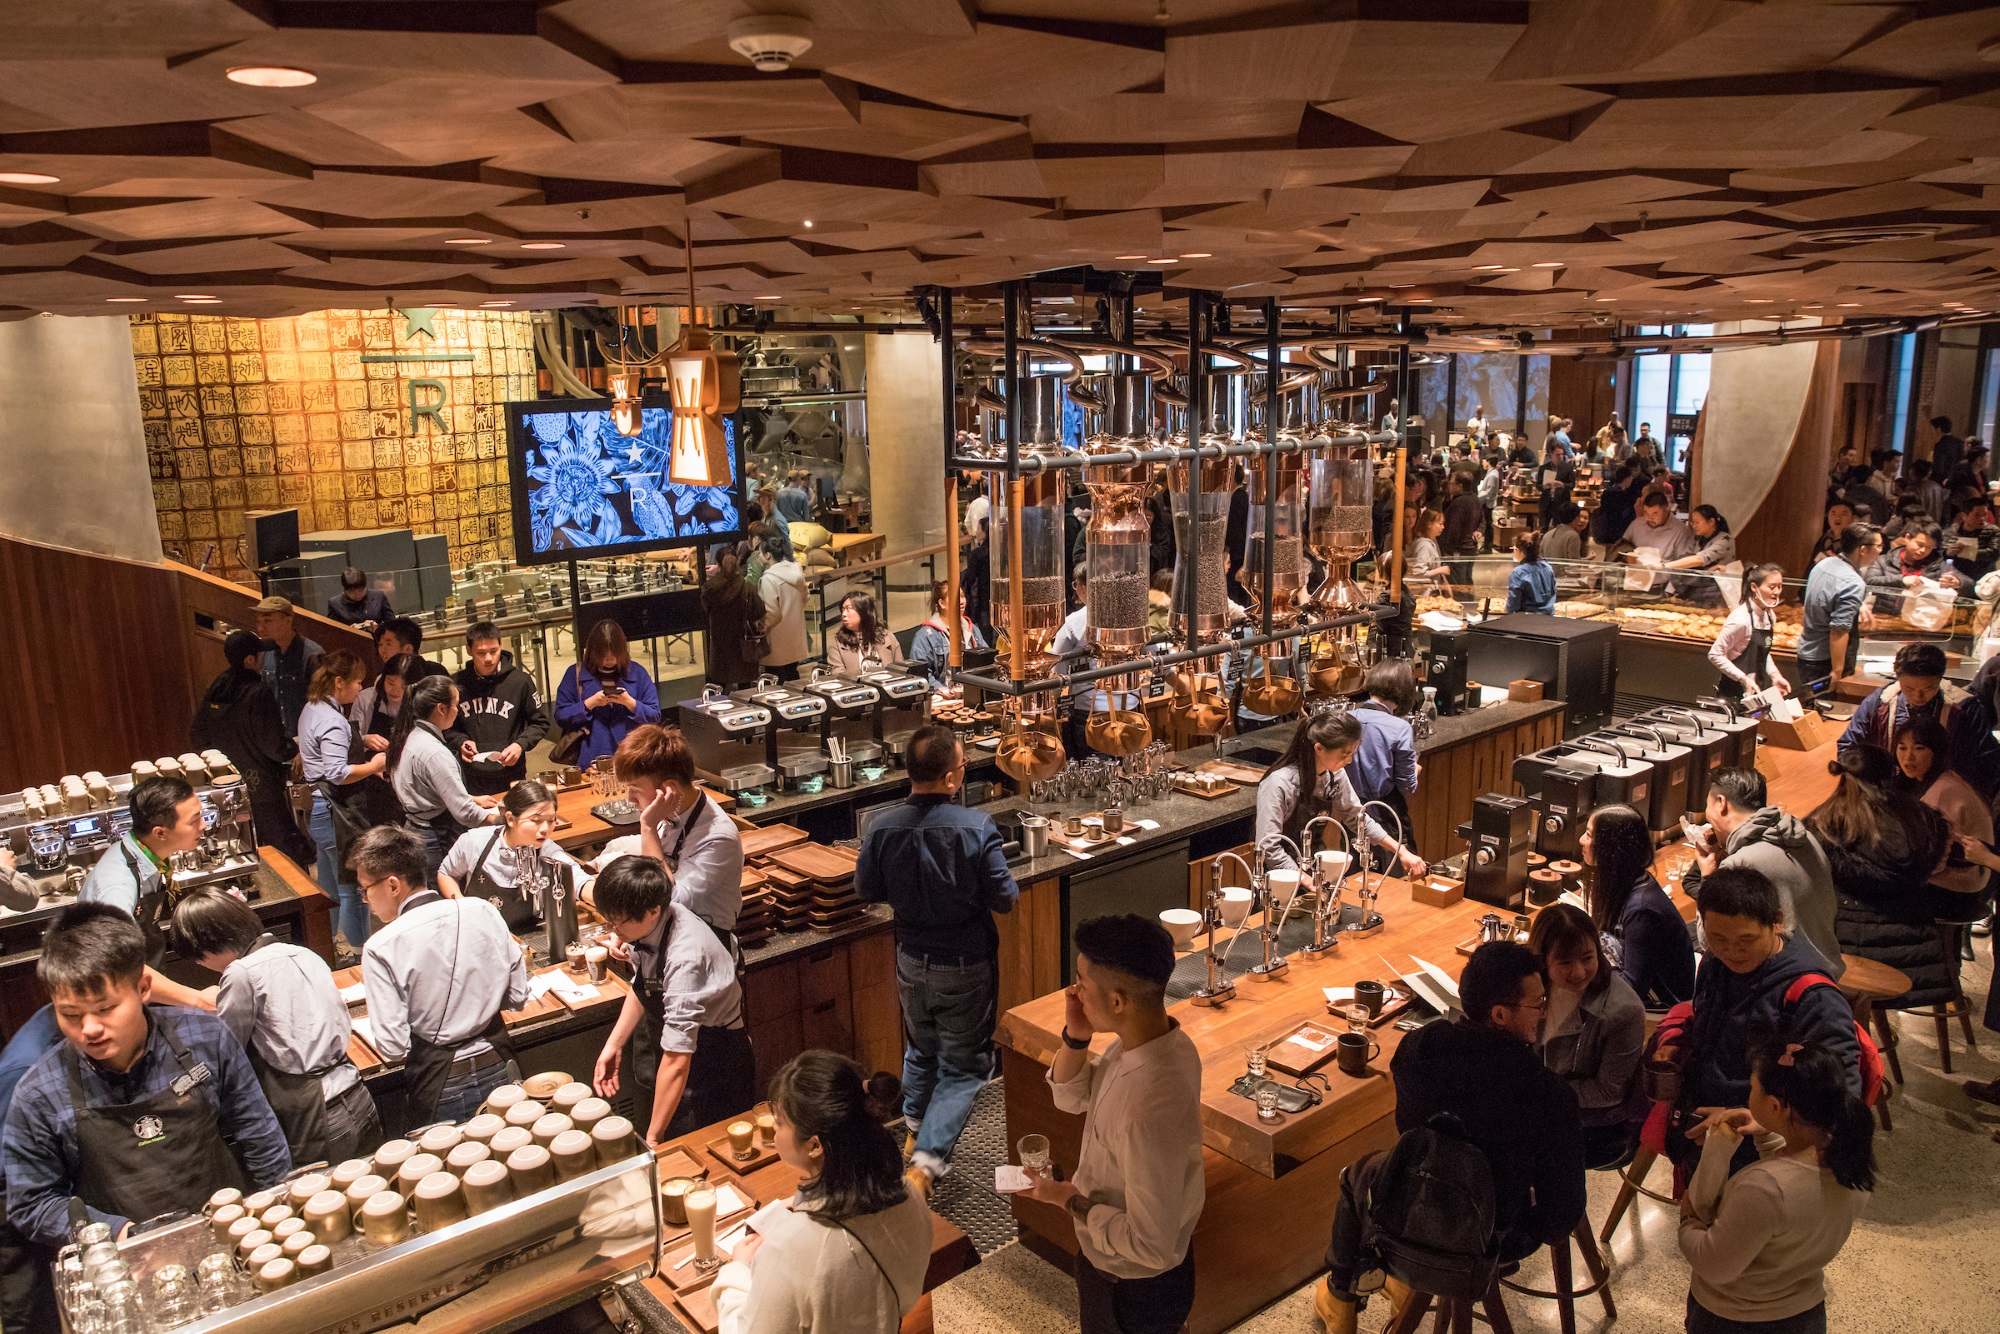 missions-mmm-retail-starbucks-reserve-roastery-shanghai-chine